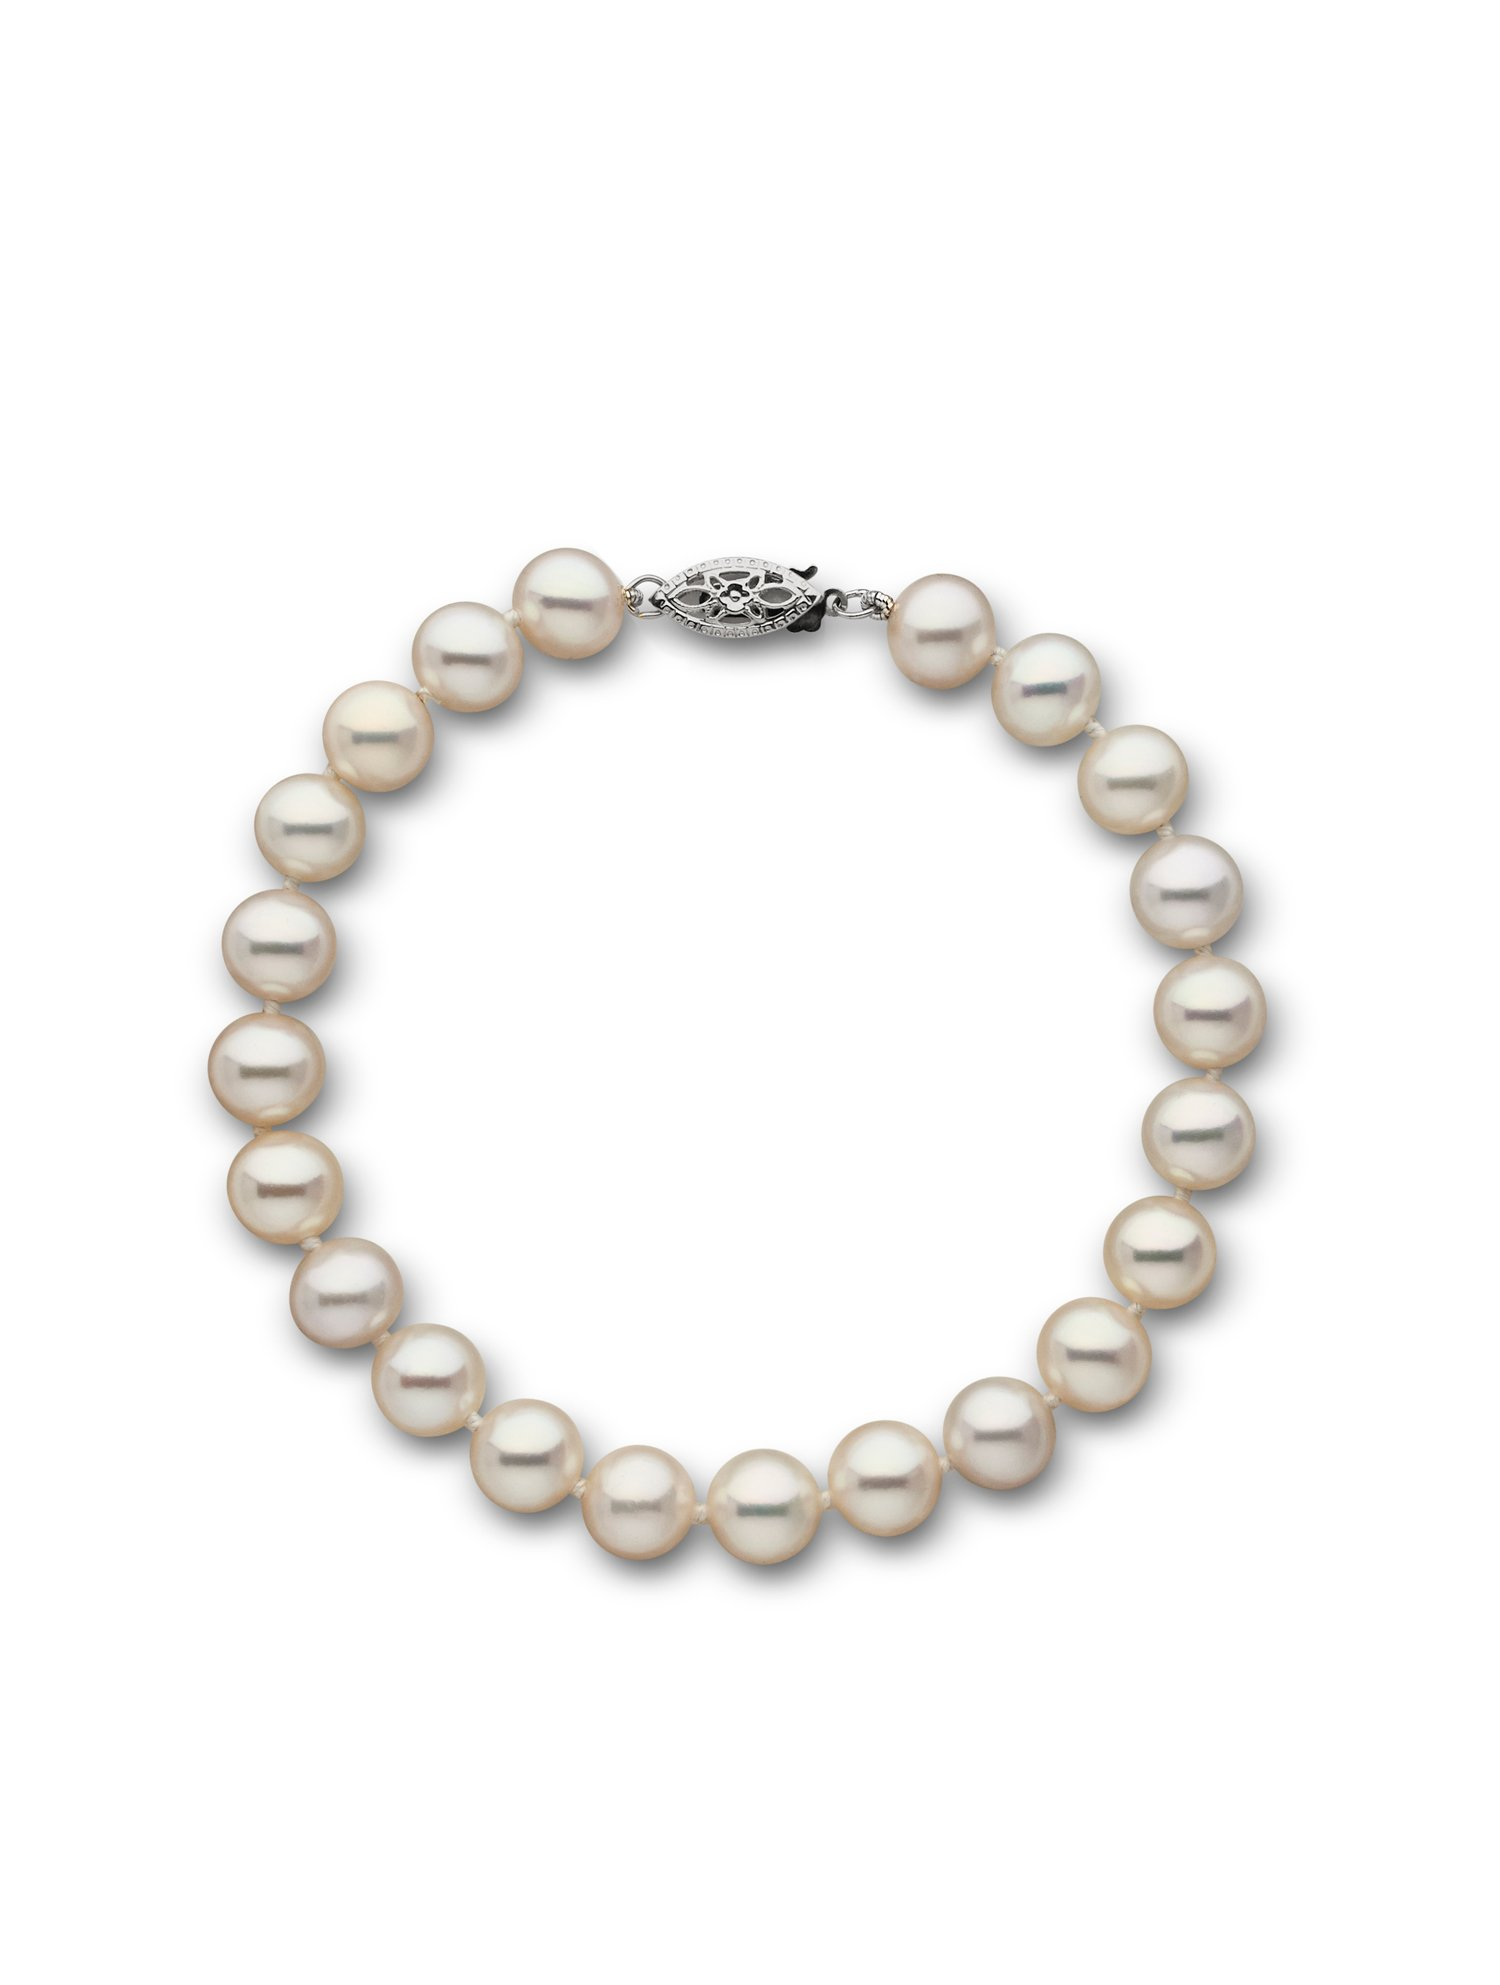 14k Freshwater Cultured Pearl Bracelet AAA Quality 7.5-8.0 mm 7.5'' White (White Gold) by Pearl Paradise